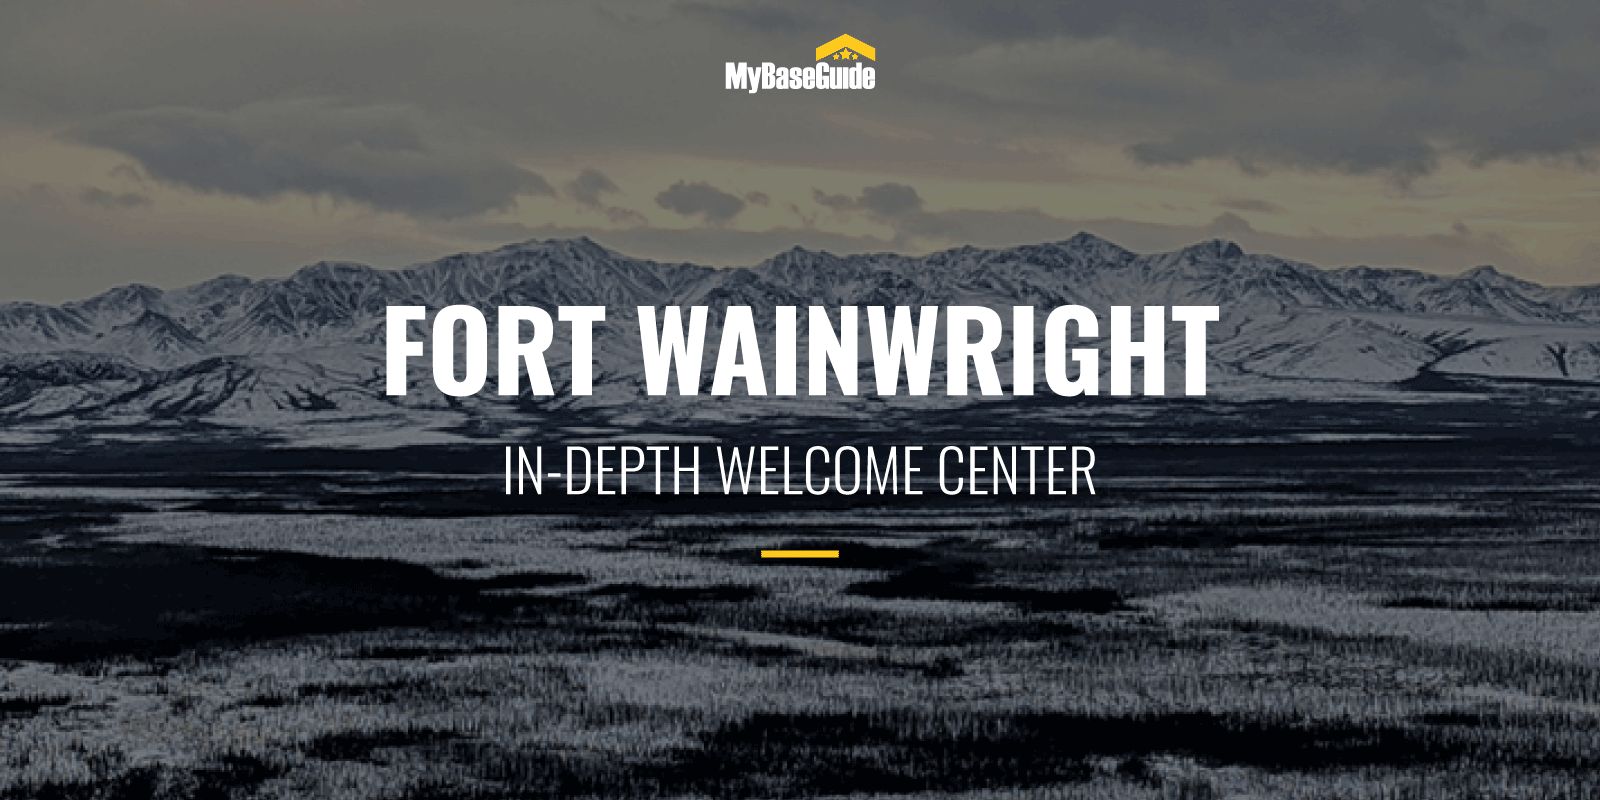 Fort Wainwright: In-Depth Welcome Center